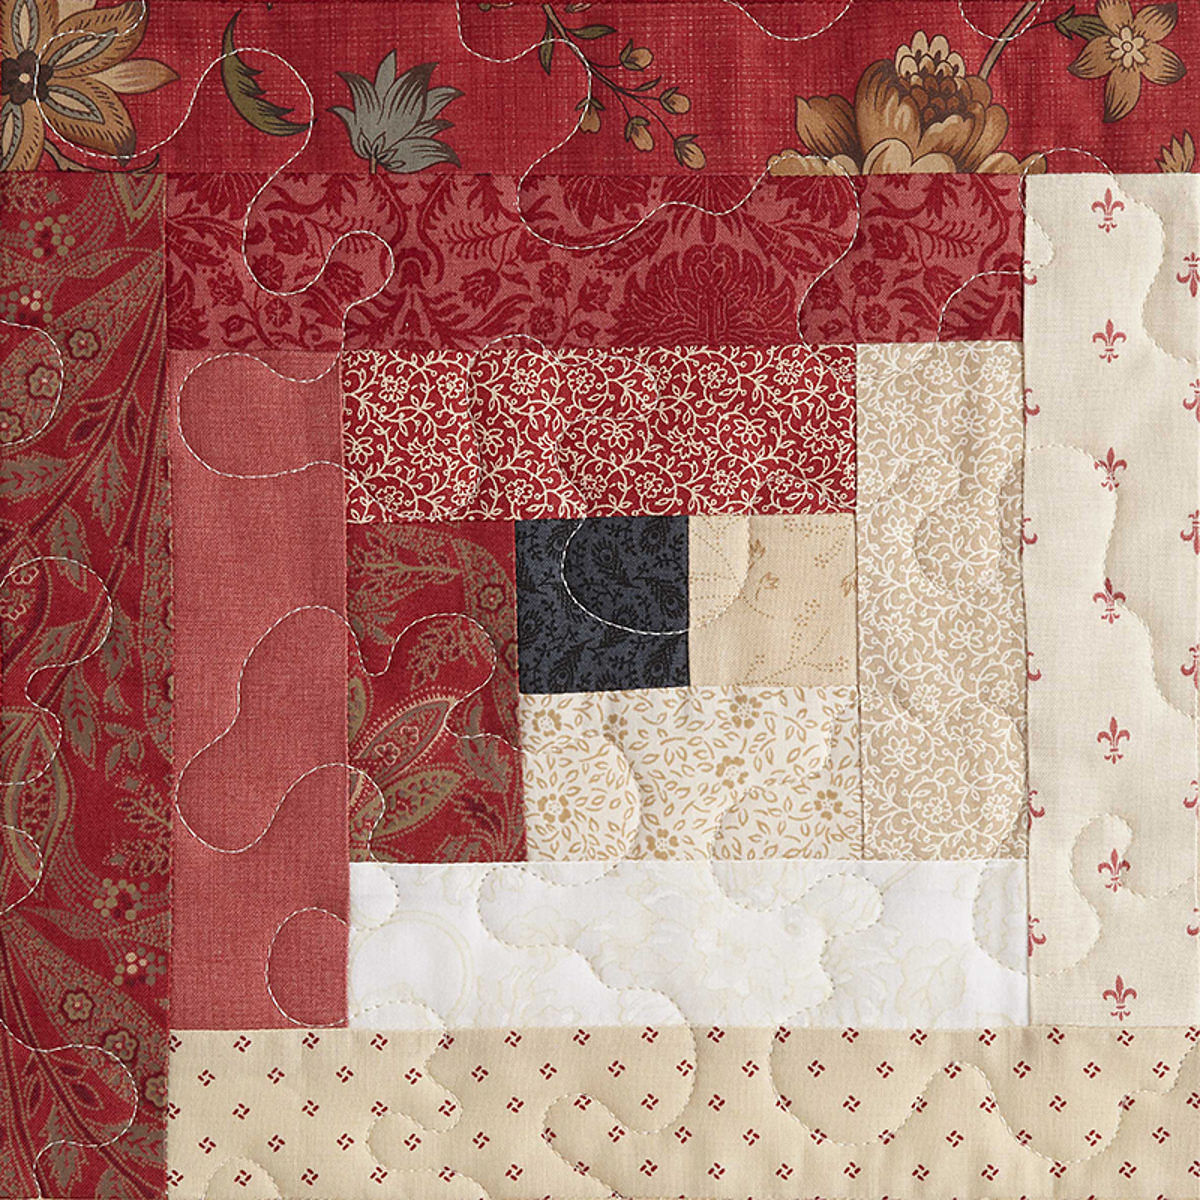 Log cabin traditionnel patchwork